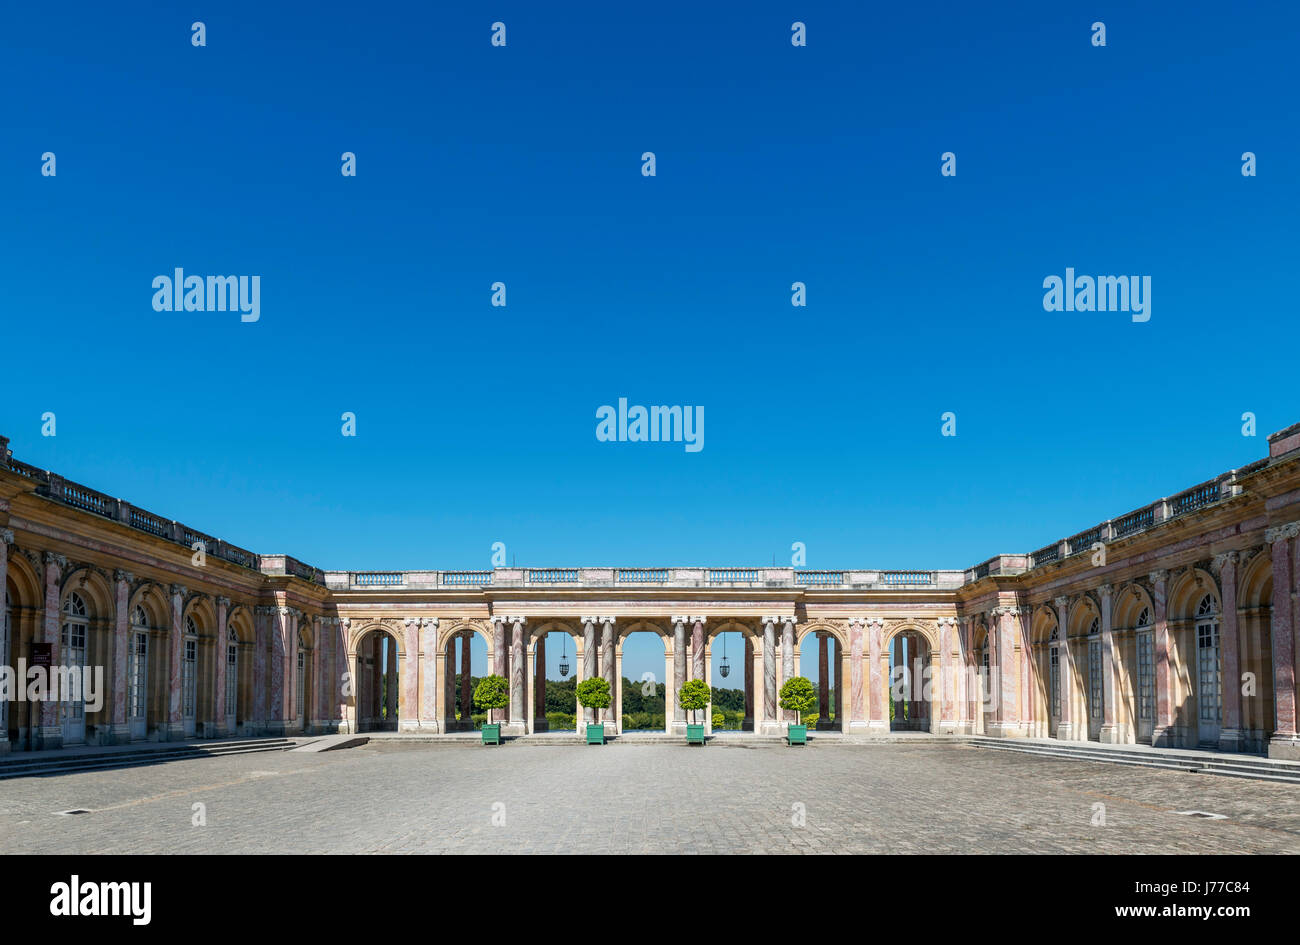 The Grand Trianon looking towards the Peristyle, Domain de Versailles, near Paris, France - Stock Image